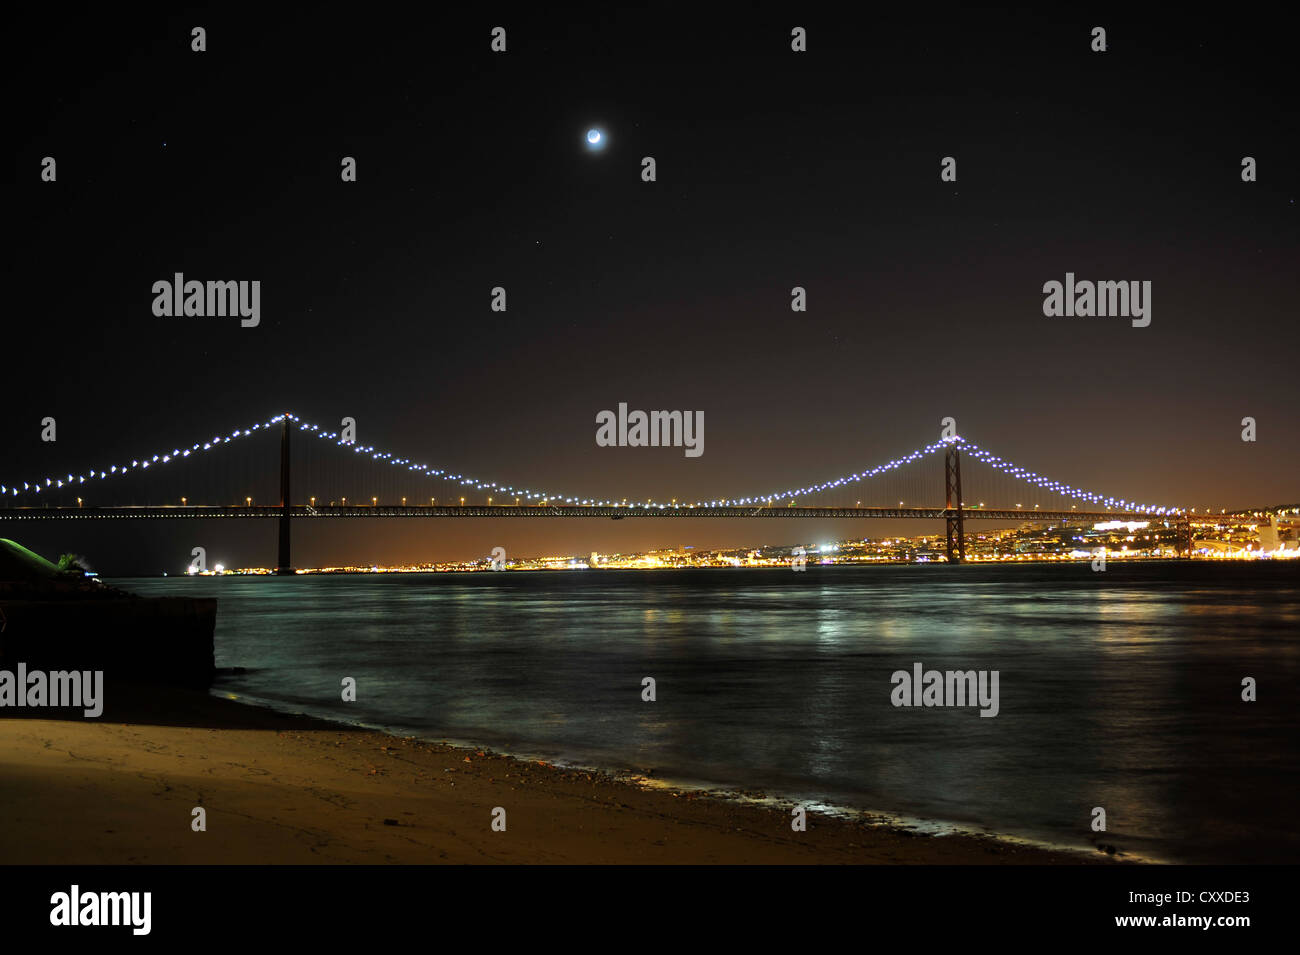 View of 25 de Abril Bridge and the suburb of Belem at night, as seen from Cacilhas, Portugal, Europe Stock Photo